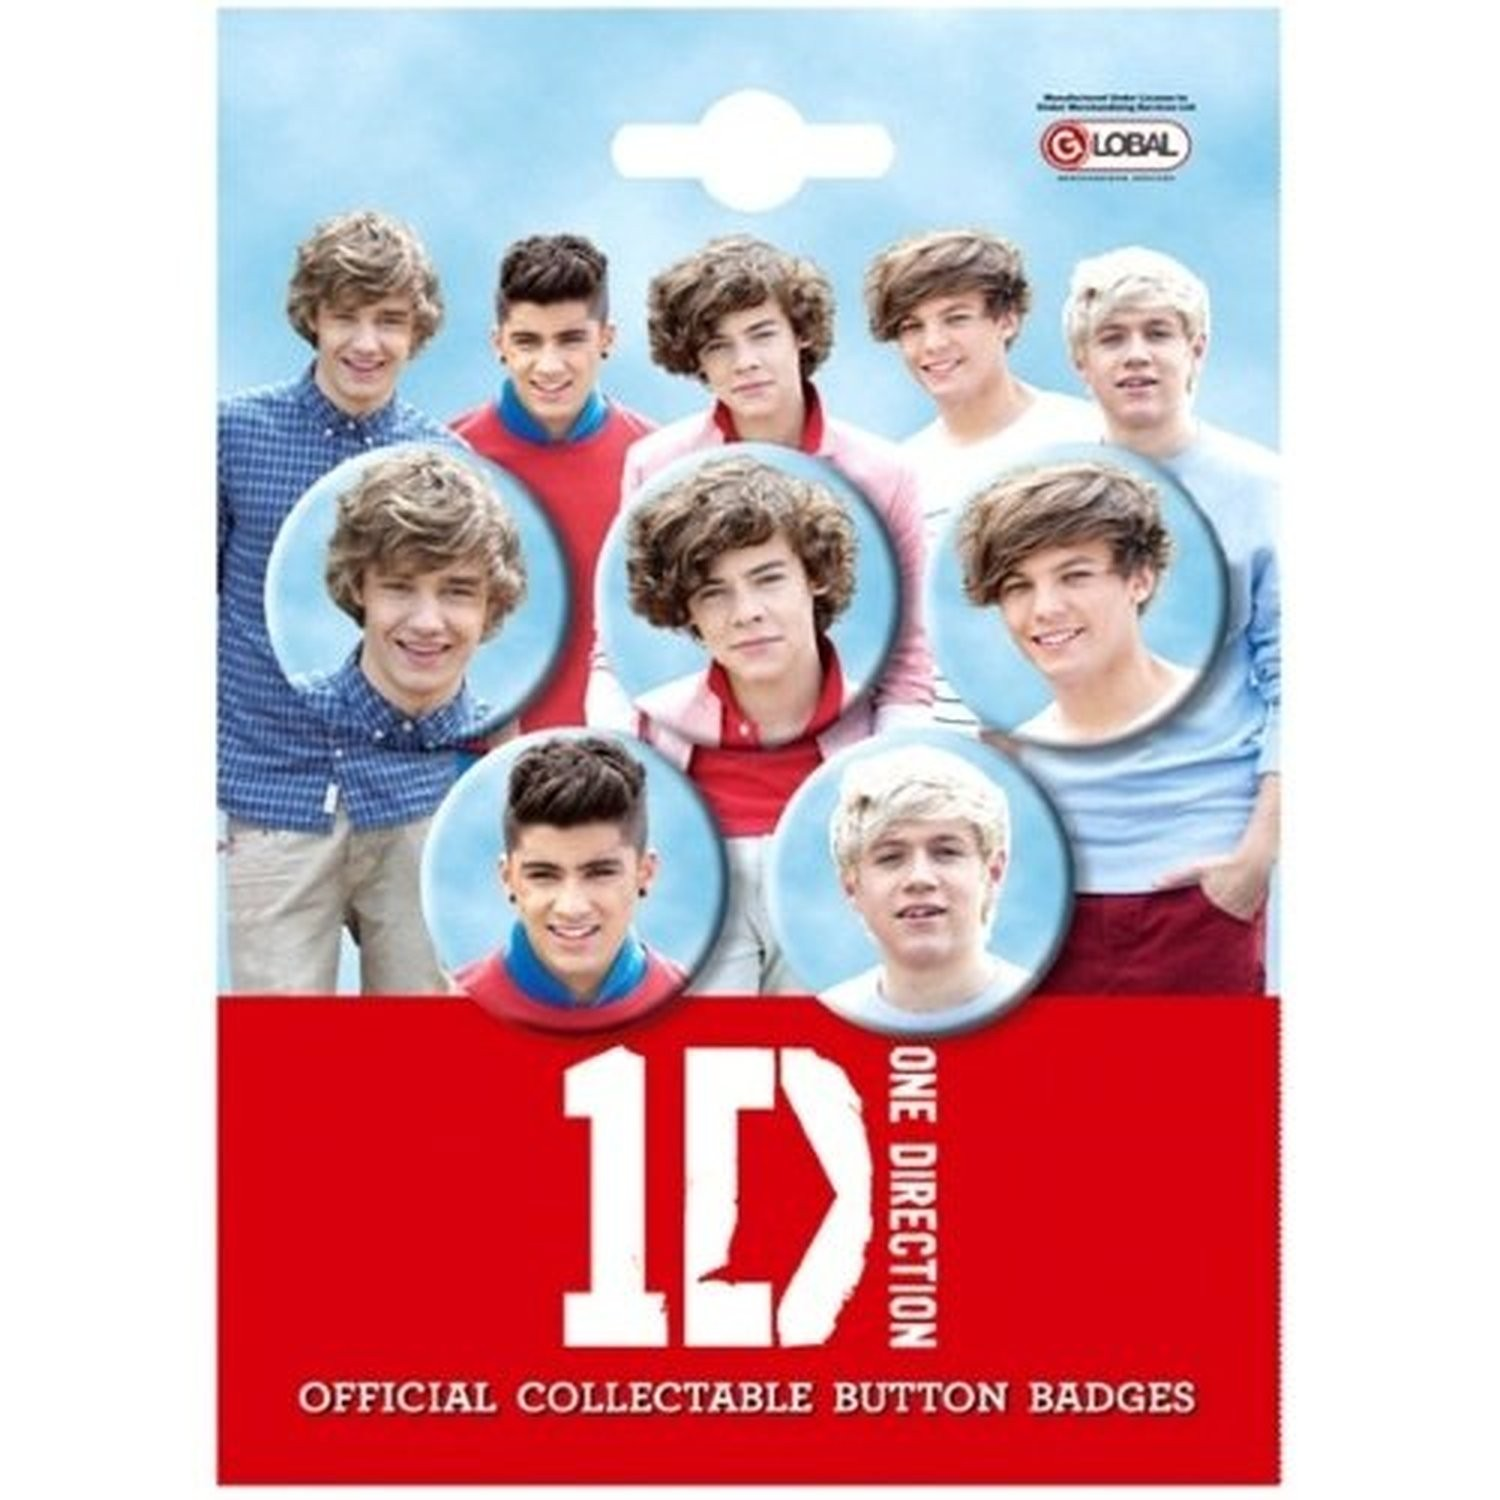 1D One Direction Pin Badges Set Of 5 Harry Zayn Liam 100% Official Genuine NEW